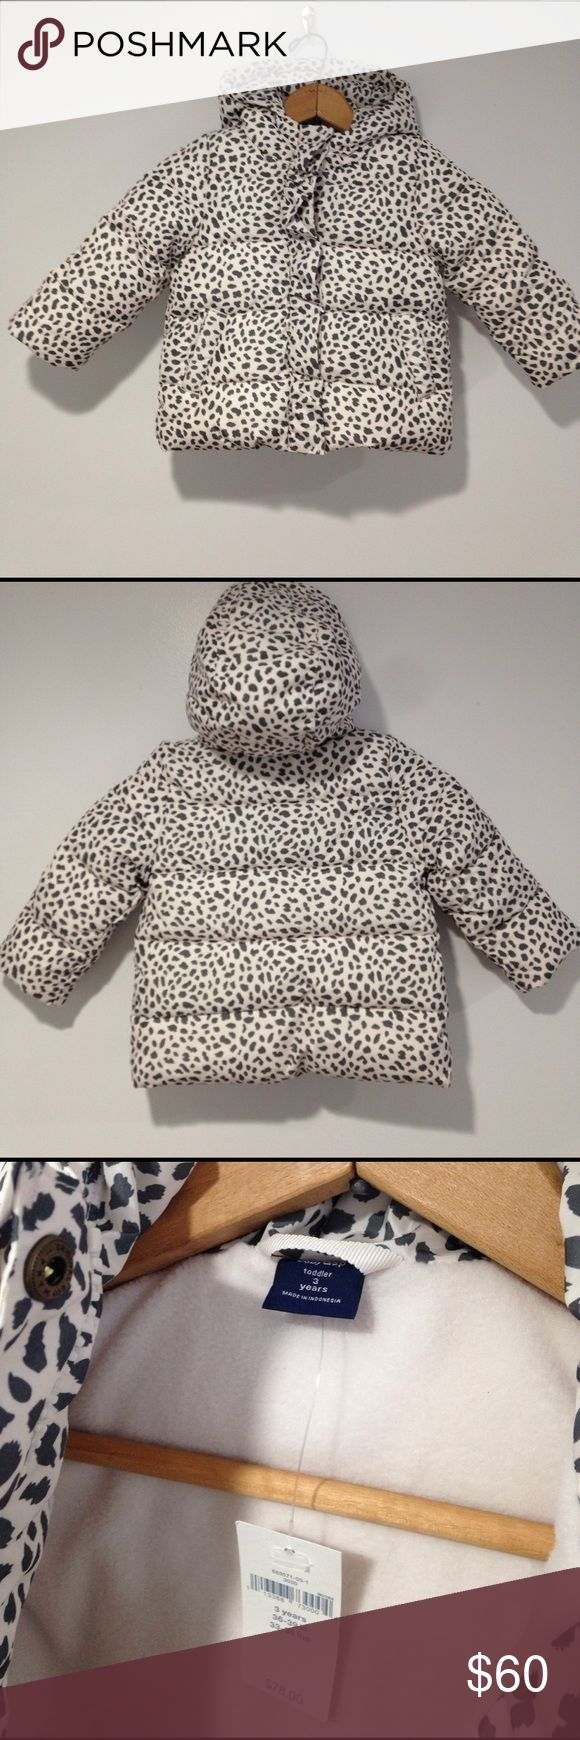 NWT Baby Gap toddler puffer coat leopard print 3t NWT Baby Gap puffer coat. This the warmest style of coat available from Gap and it's worth every penny! Would be willing to trade for equivalent type of Gap coat in 5t. GAP Jackets & Coats Puffers